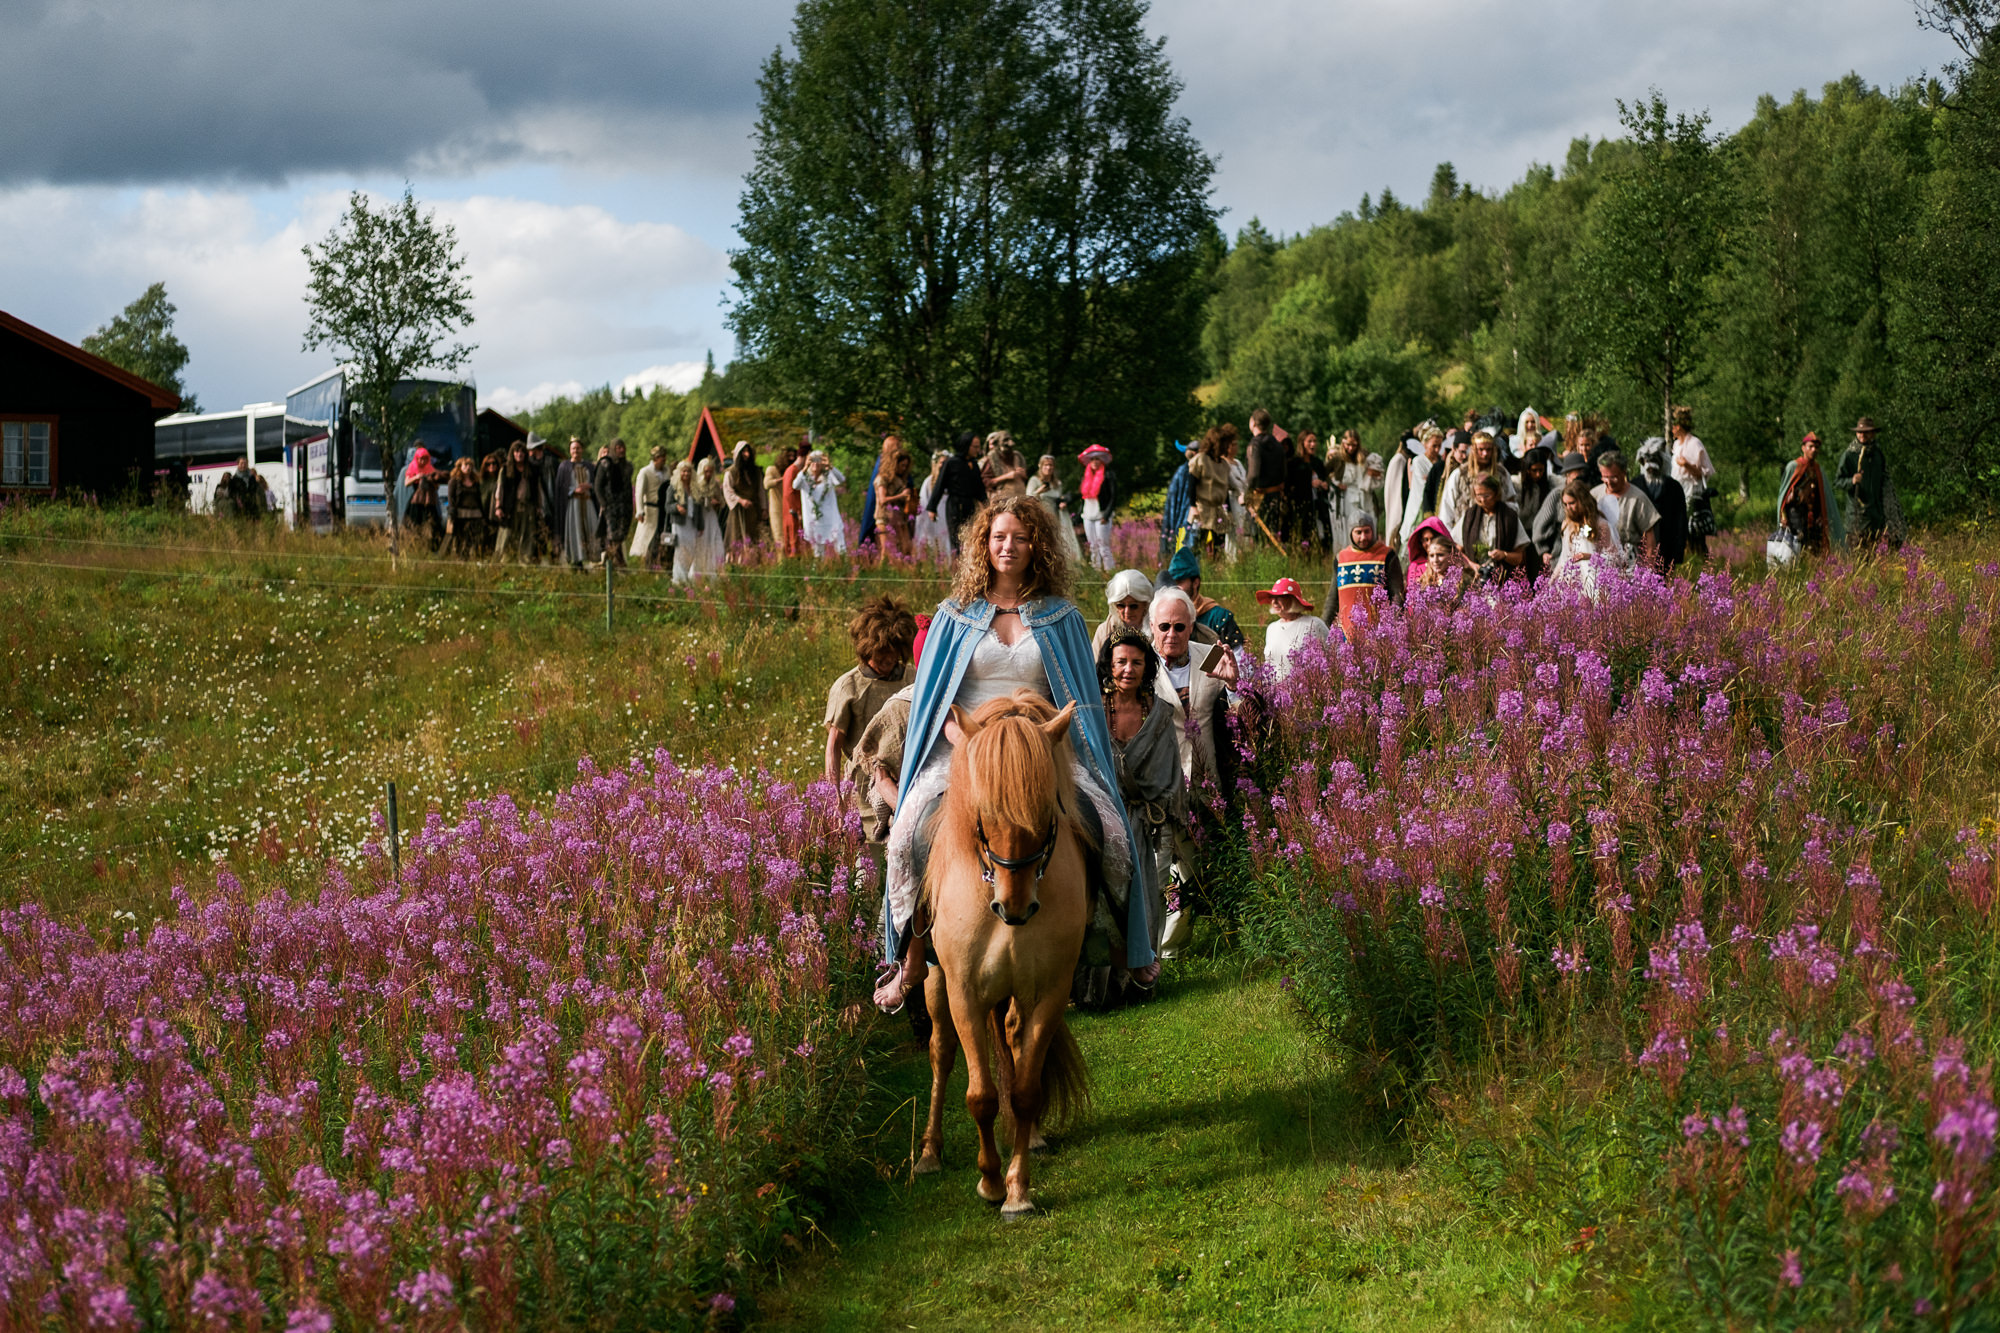 viking-inspired-wedding-bride-arrives-on-horseback-worlds-best-wedding-photos-nordica-sweden-wedding-photographers